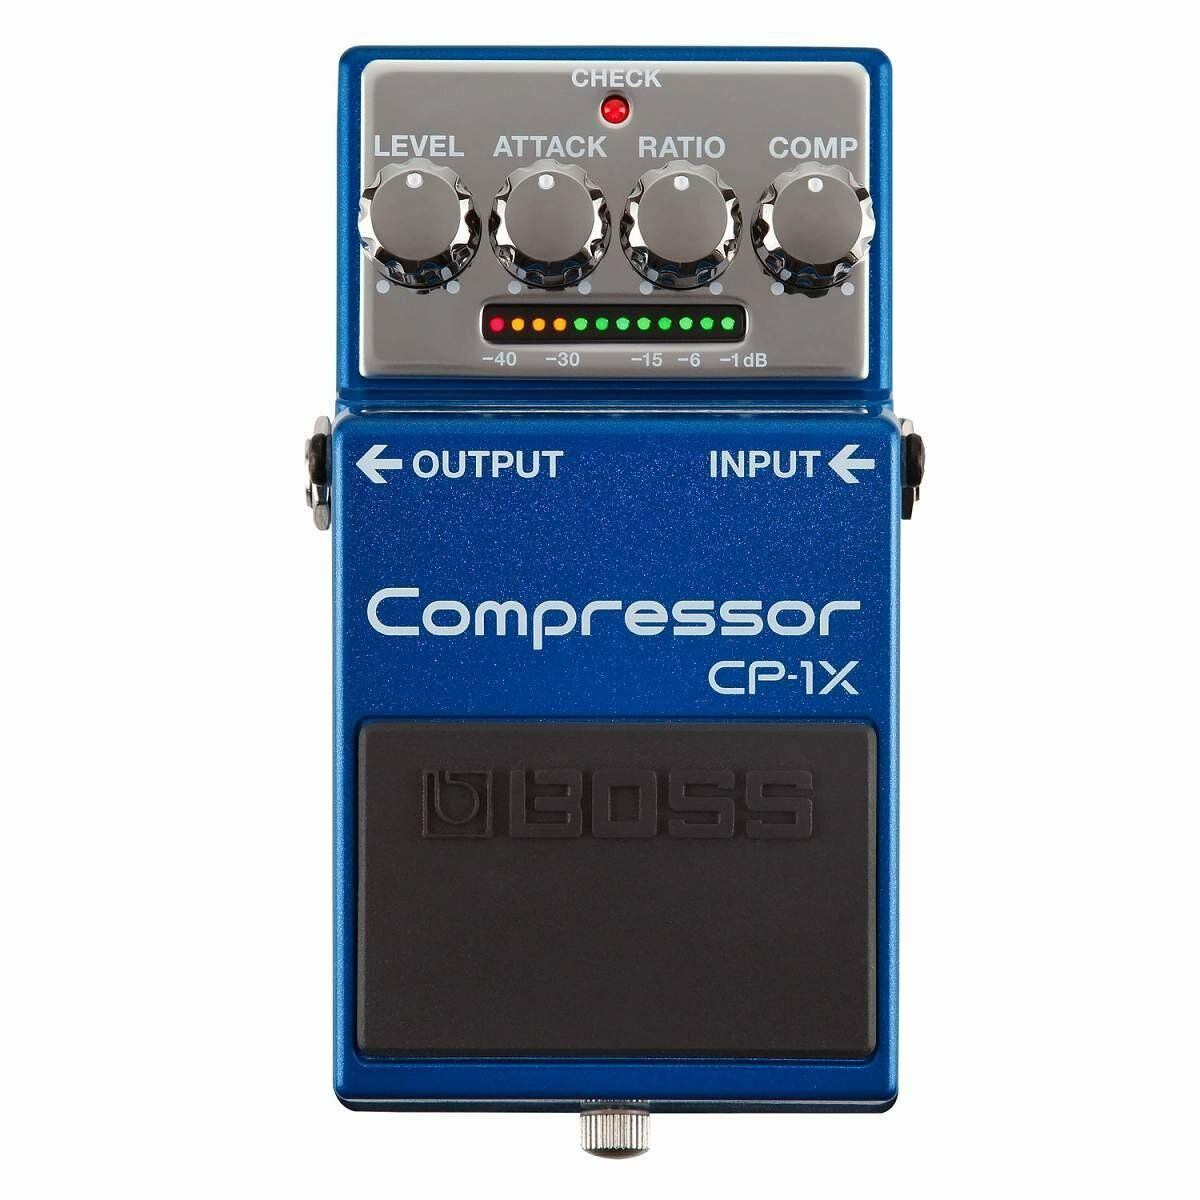 New BOSS CP-1X Compressor Guitar Effects Pedal From Japan